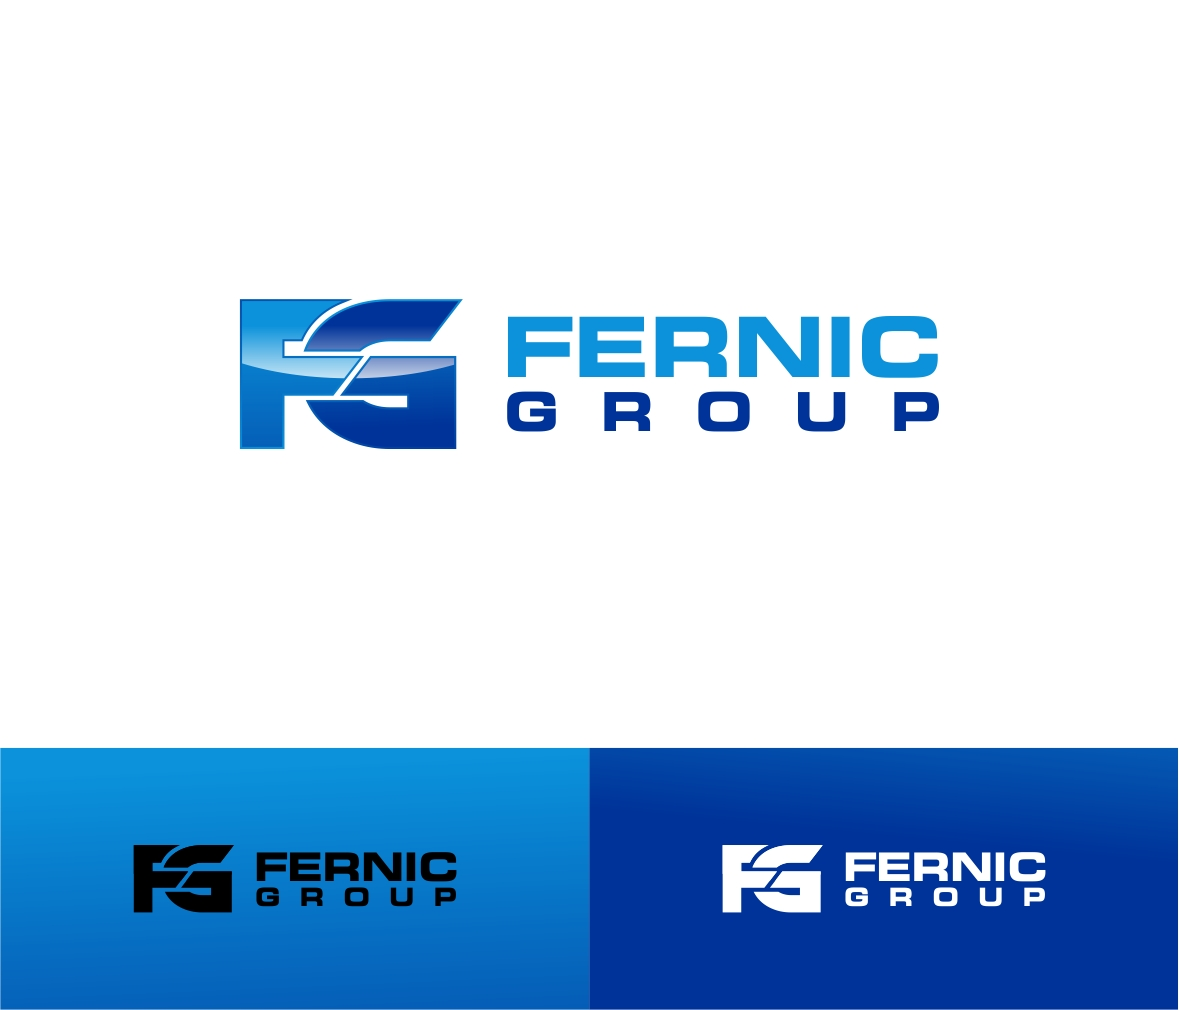 Logo Design by haidu - Entry No. 12 in the Logo Design Contest Artistic Logo Design for Fernic Goup.